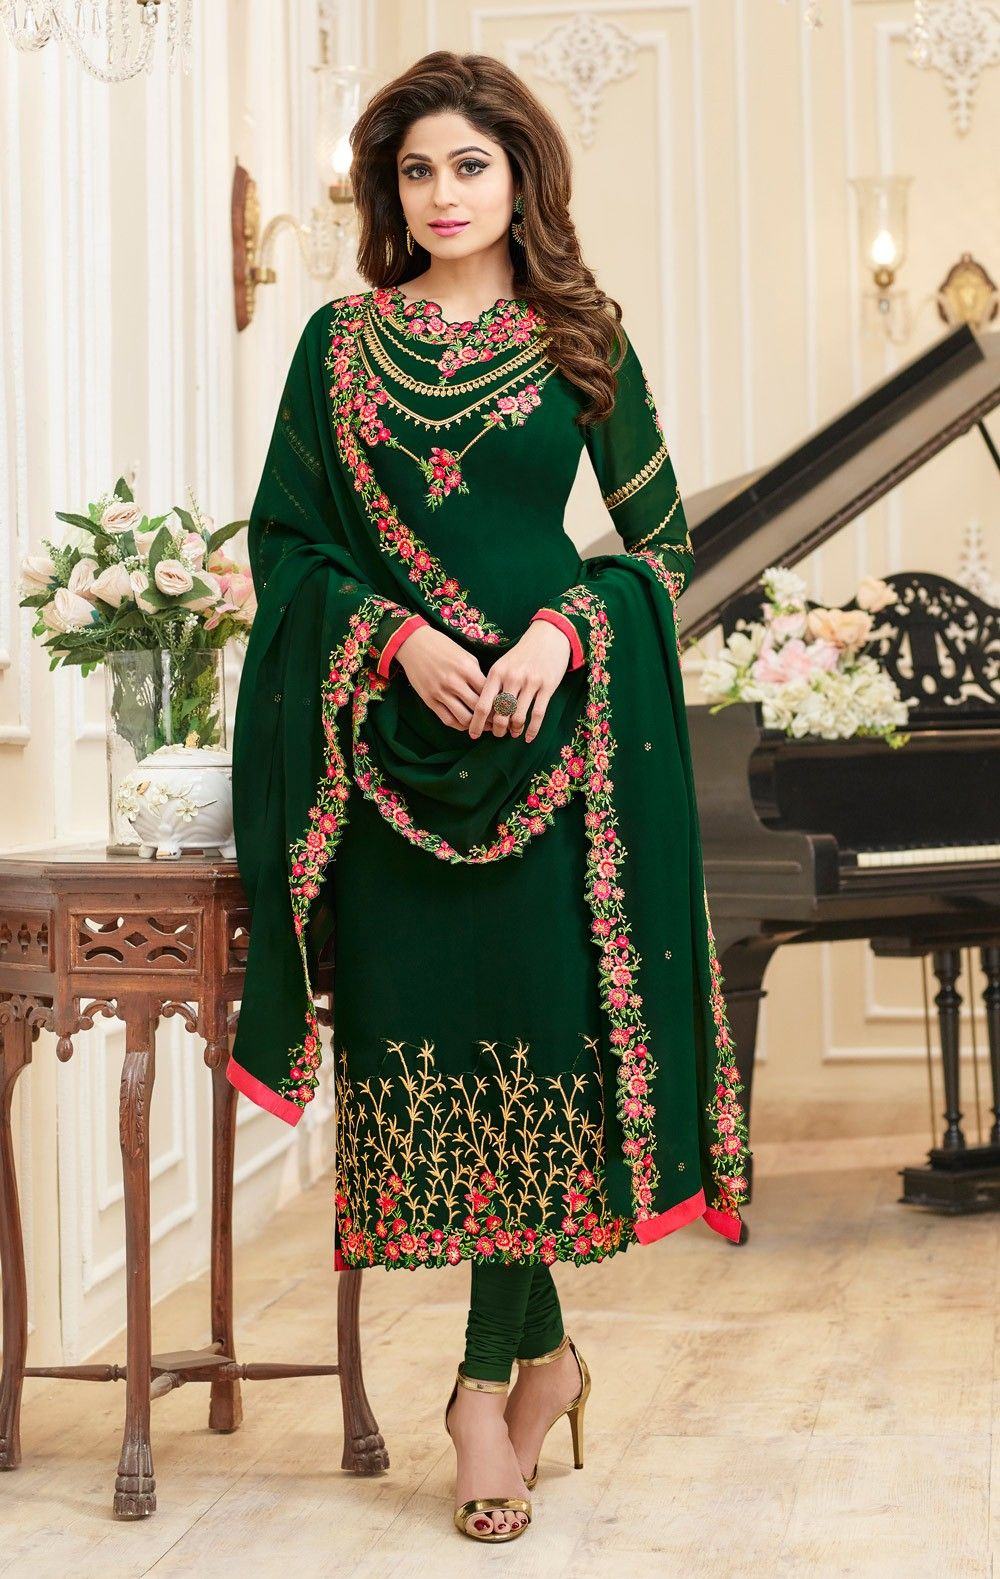 Georgette Latest Indian Salwar Kameez Designs 2018 For Parties